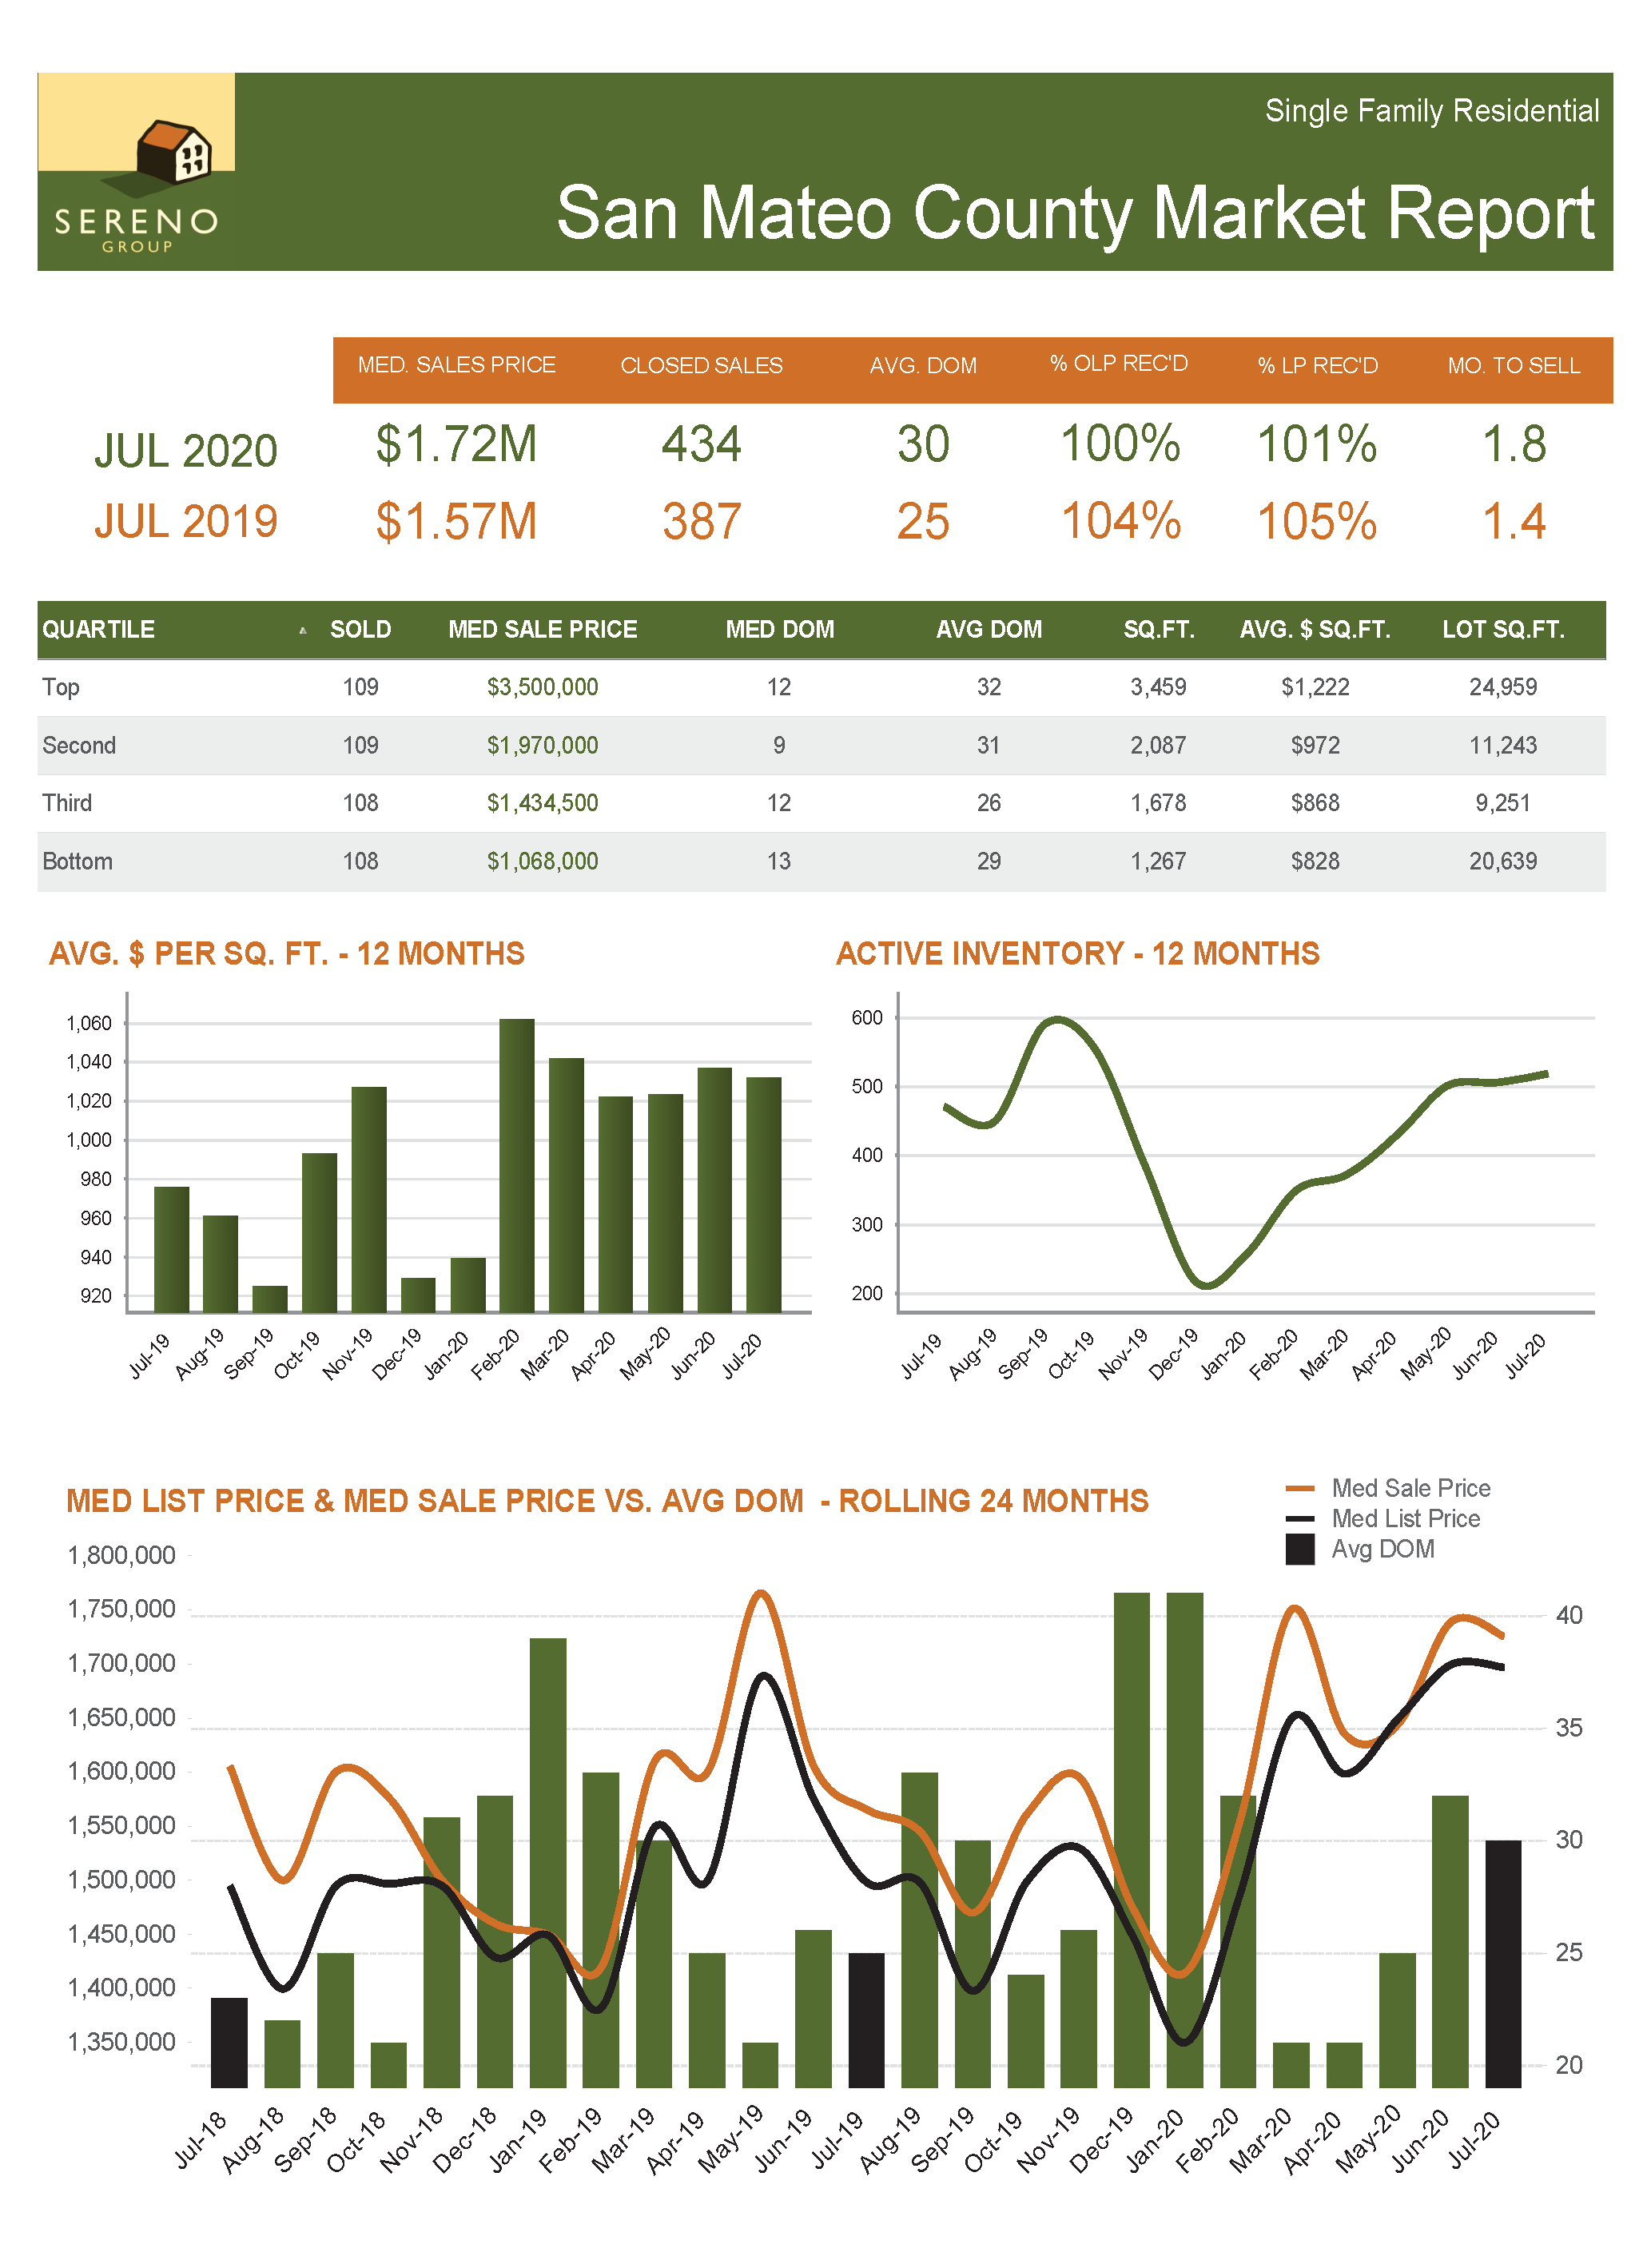 San Mateo County SFH Market Report - Jul 2020